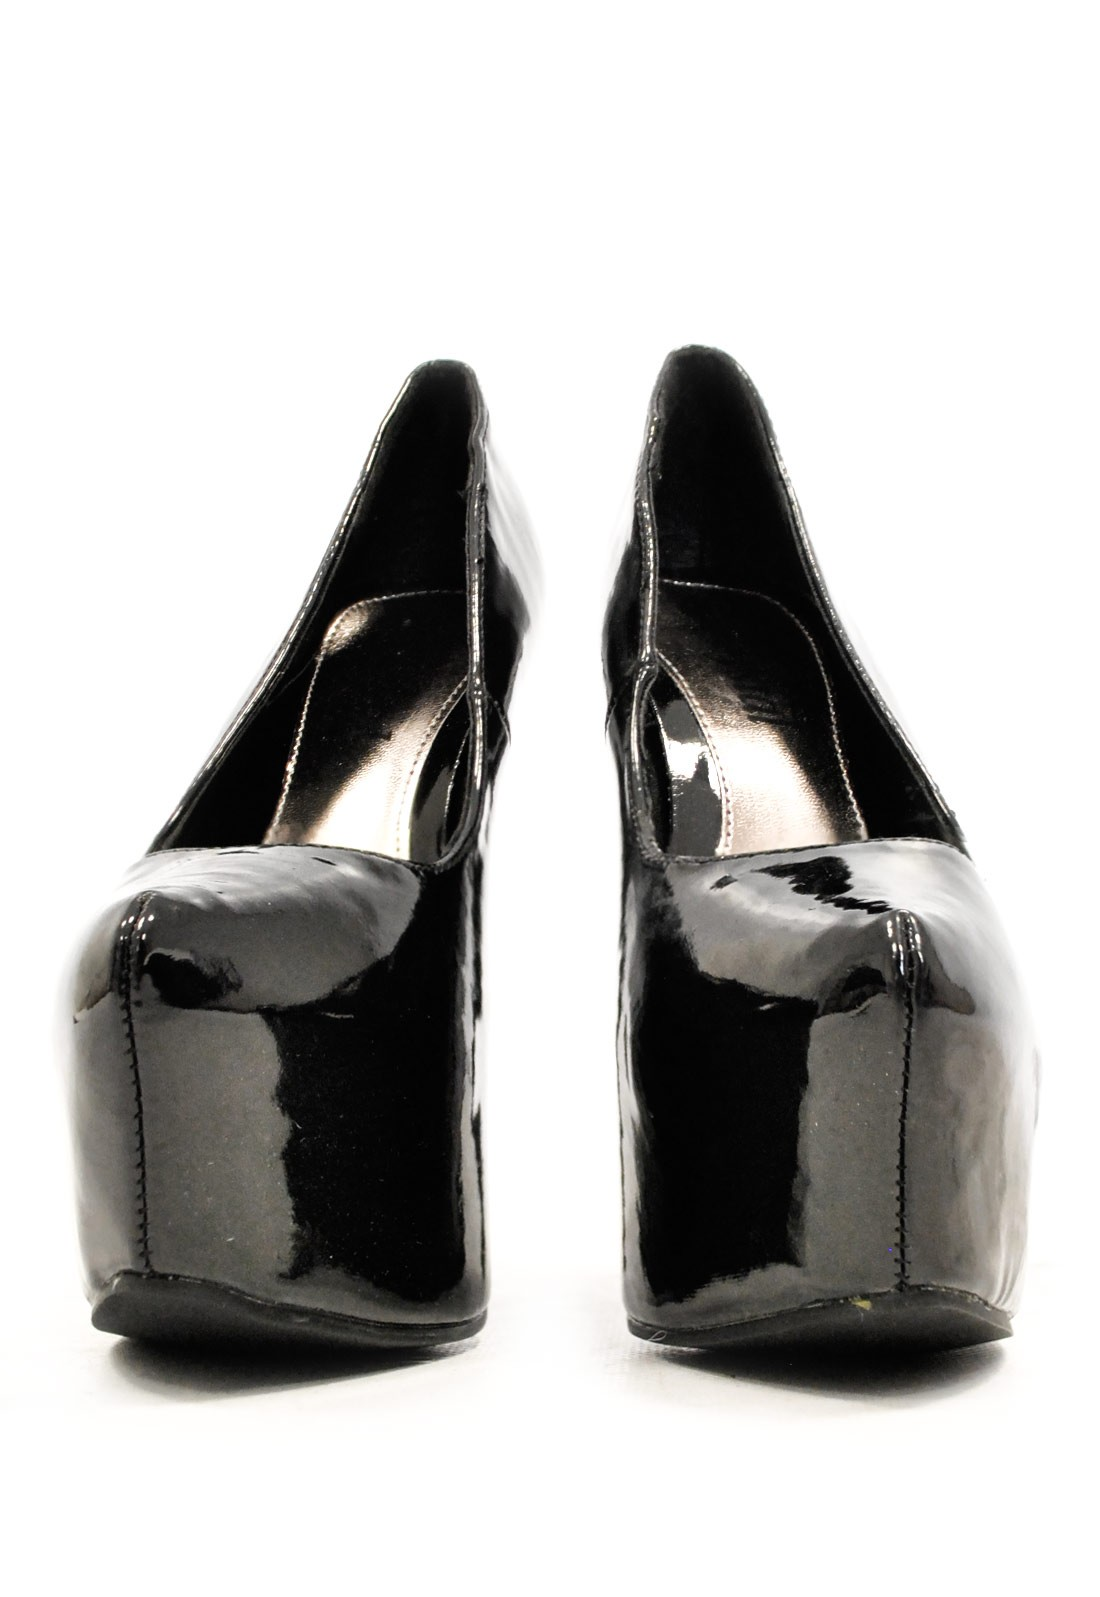 247 patent platform court shoe in black iclothing